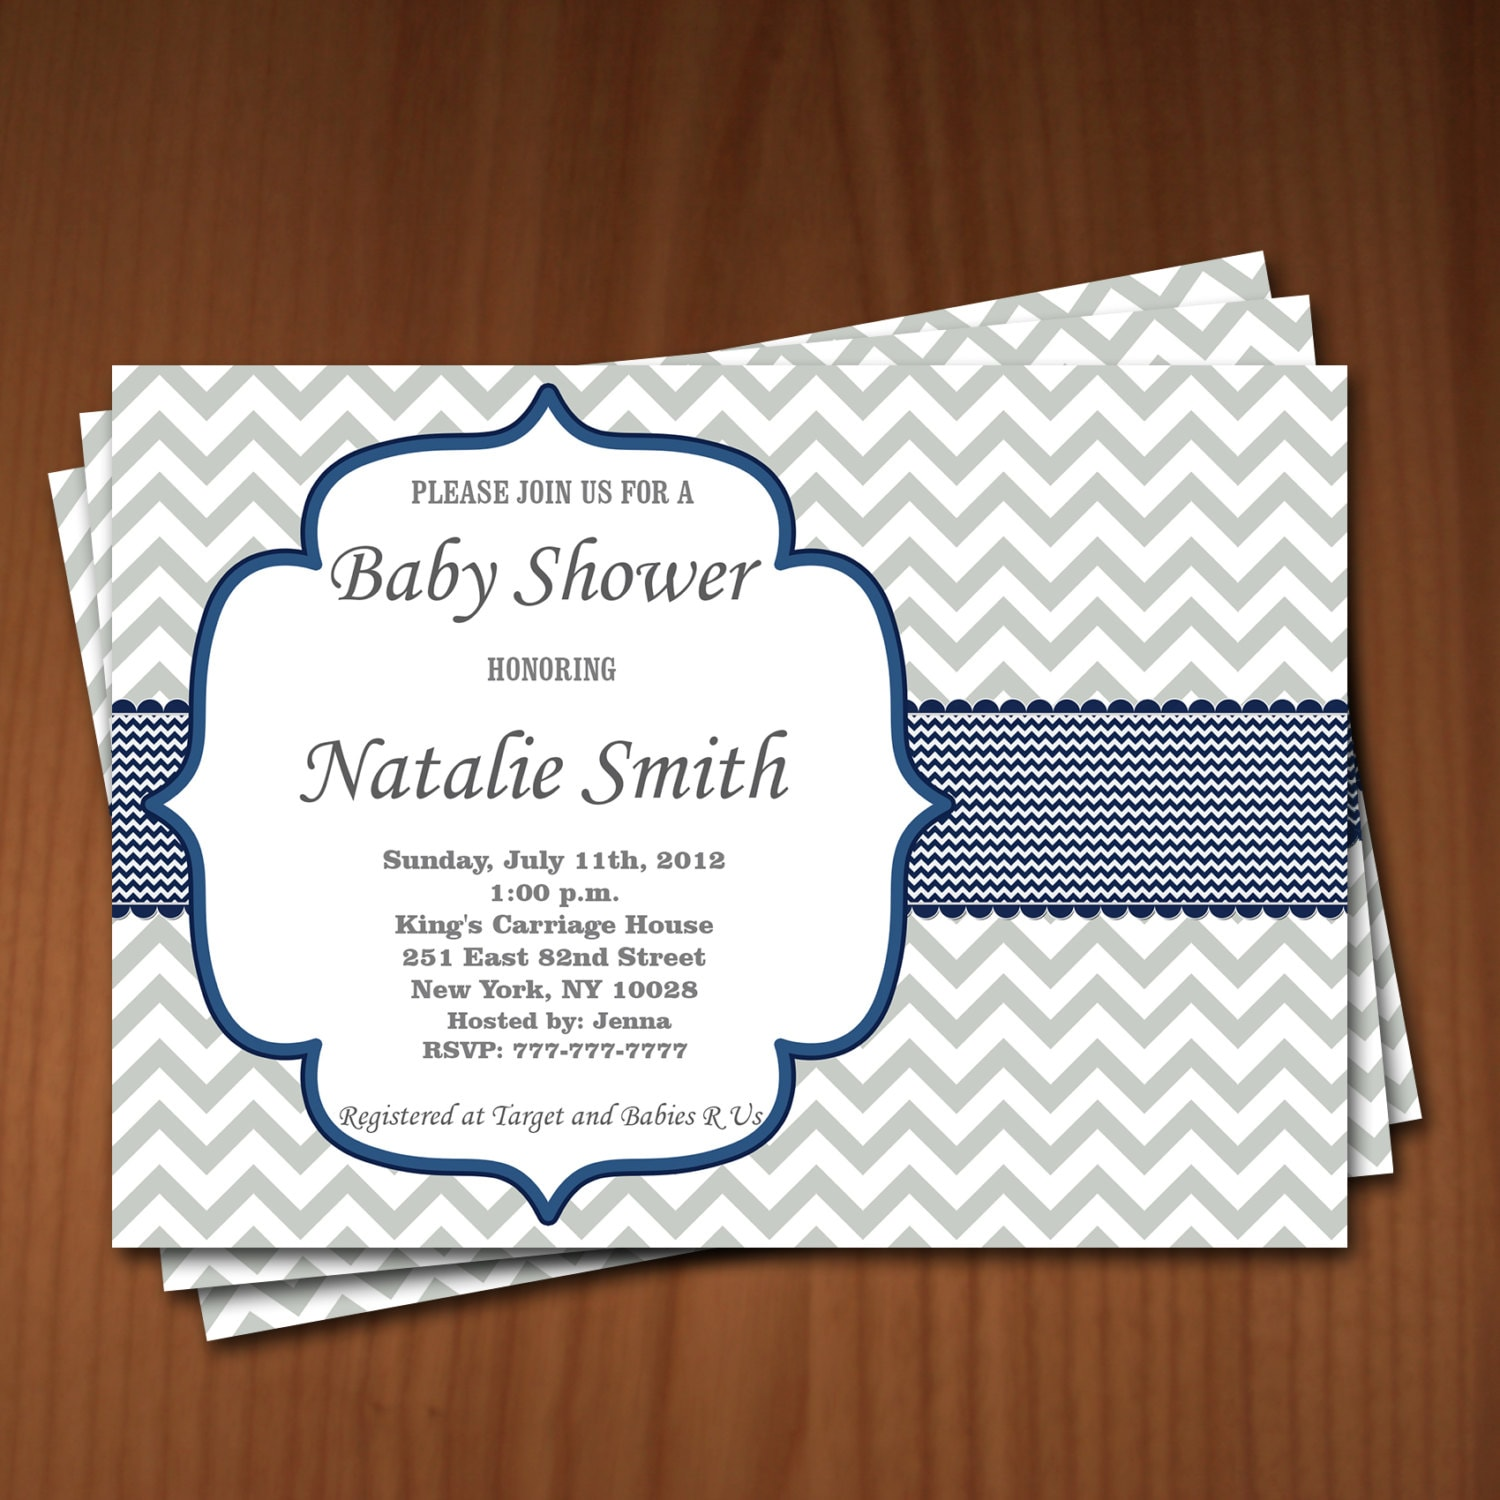 Baby Shower Invitations, Printable Baby Shower Invitations